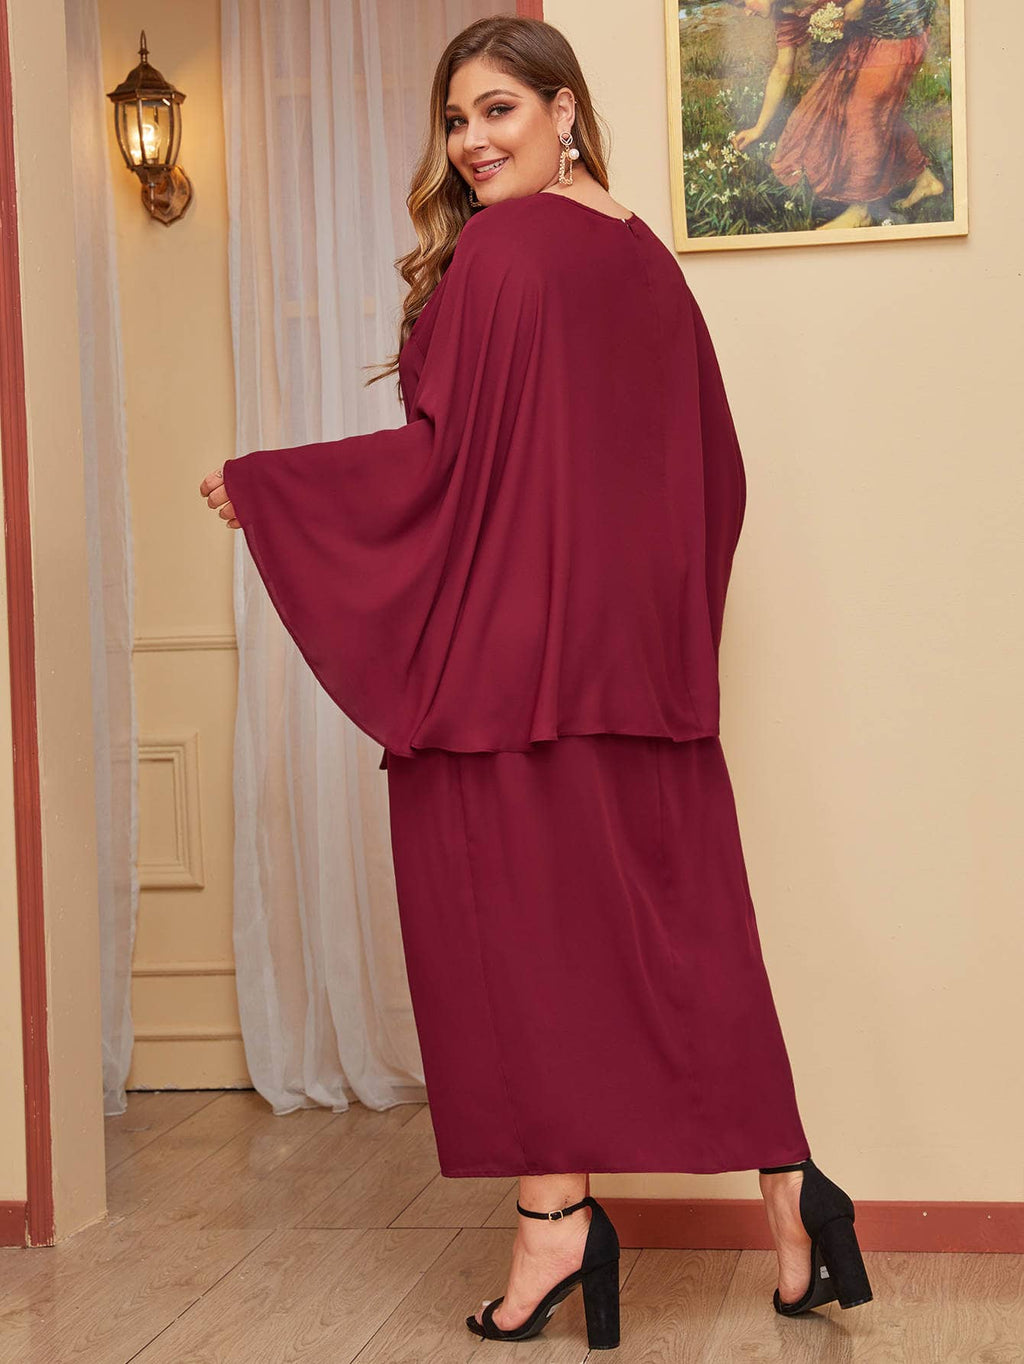 Plus Size Elegant Solid Self Belted Cape Dress